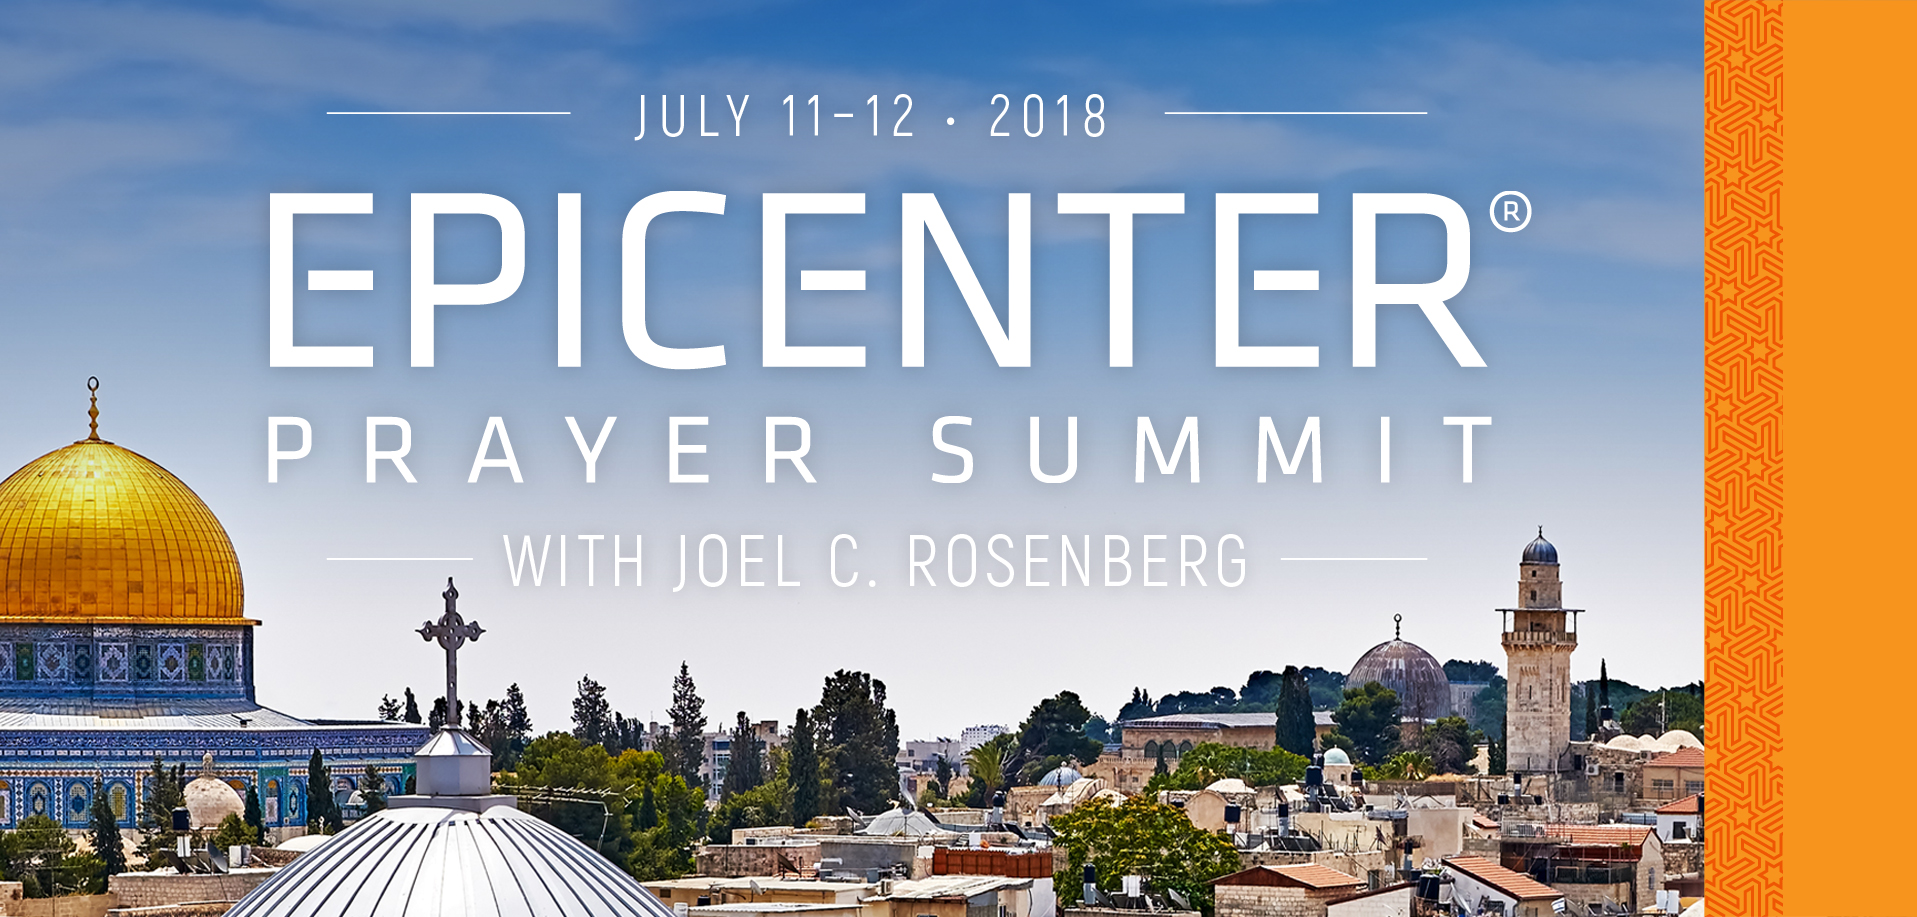 Take a Christian TourWOX with Epicenter Prayer Summit - Israel - July 11-12, 2018